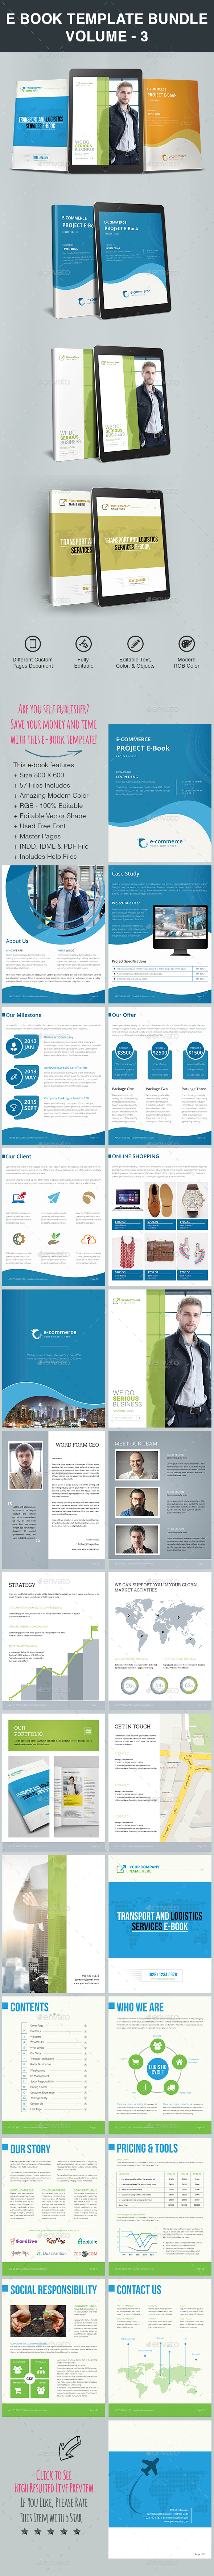 GraphicRiver E Book Template Bundle Volume 3 20554644